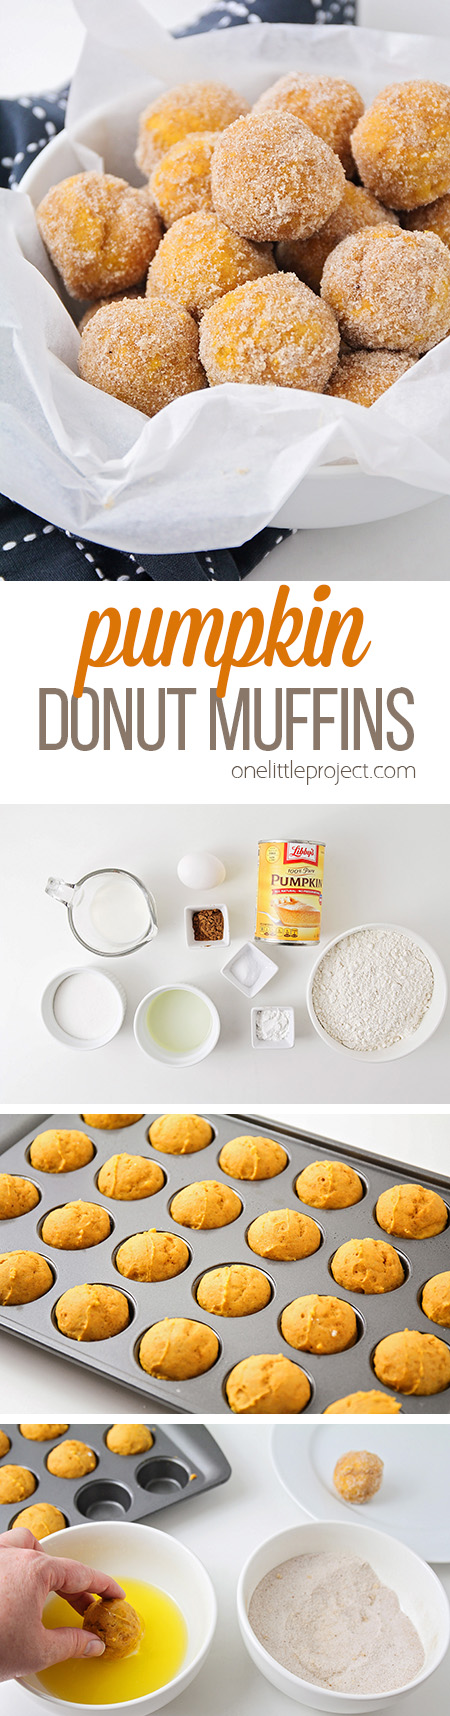 These bite-sized pumpkin donut muffins are the perfect treat for fall! They're so light and tender, and rolled in spiced sugar for extra deliciousness!